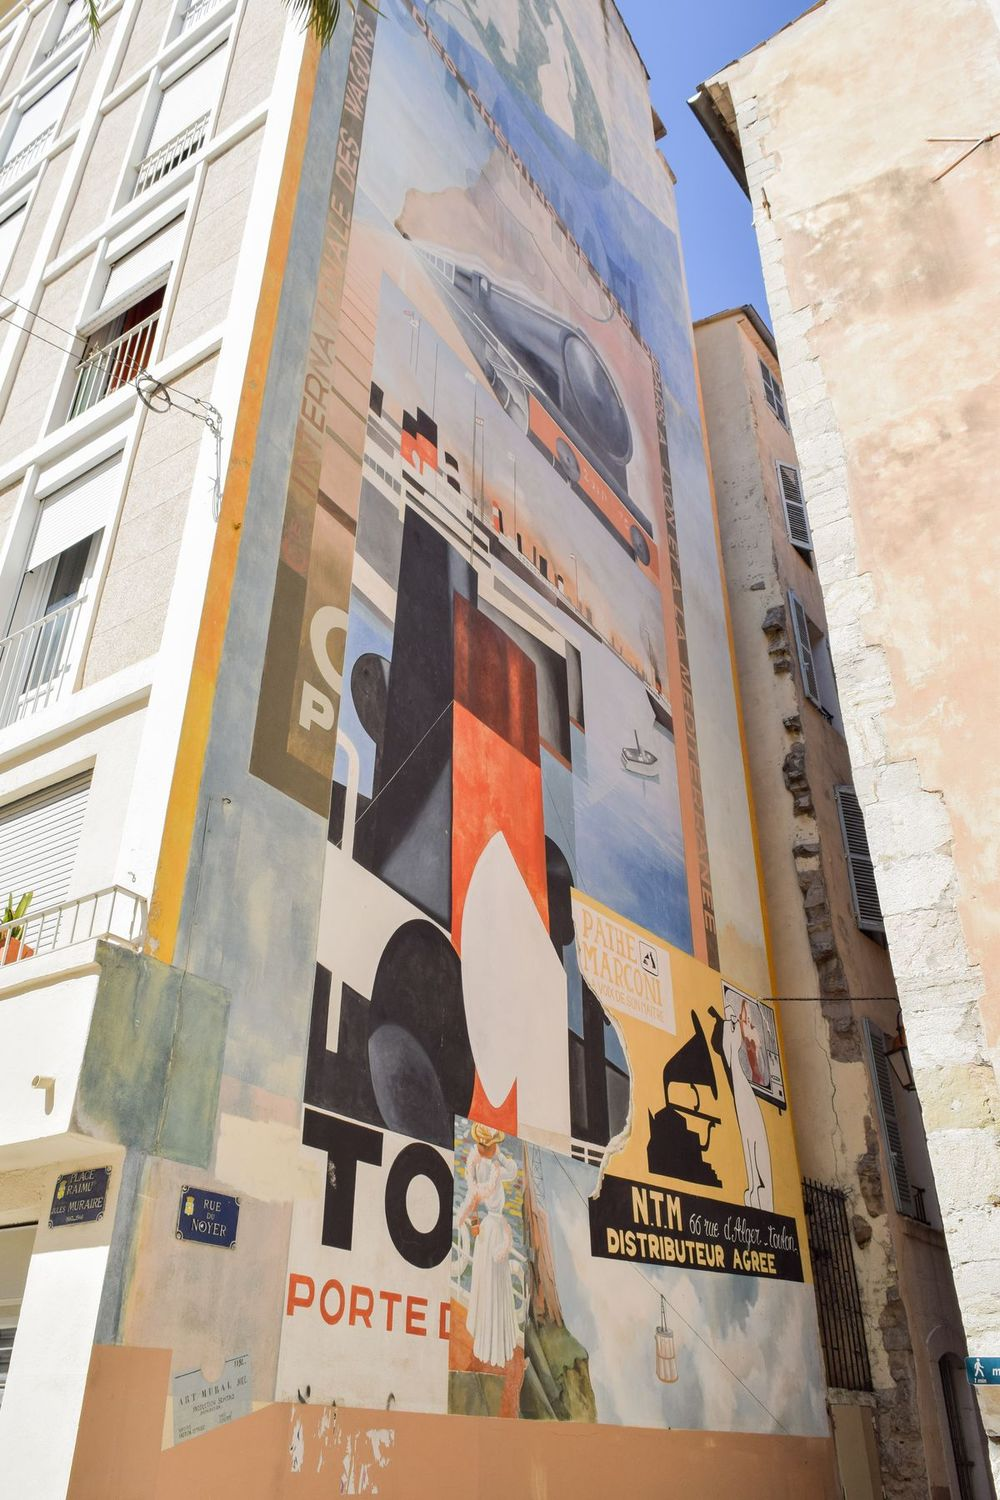 Enormous wall mural in Old Town Toulon, France